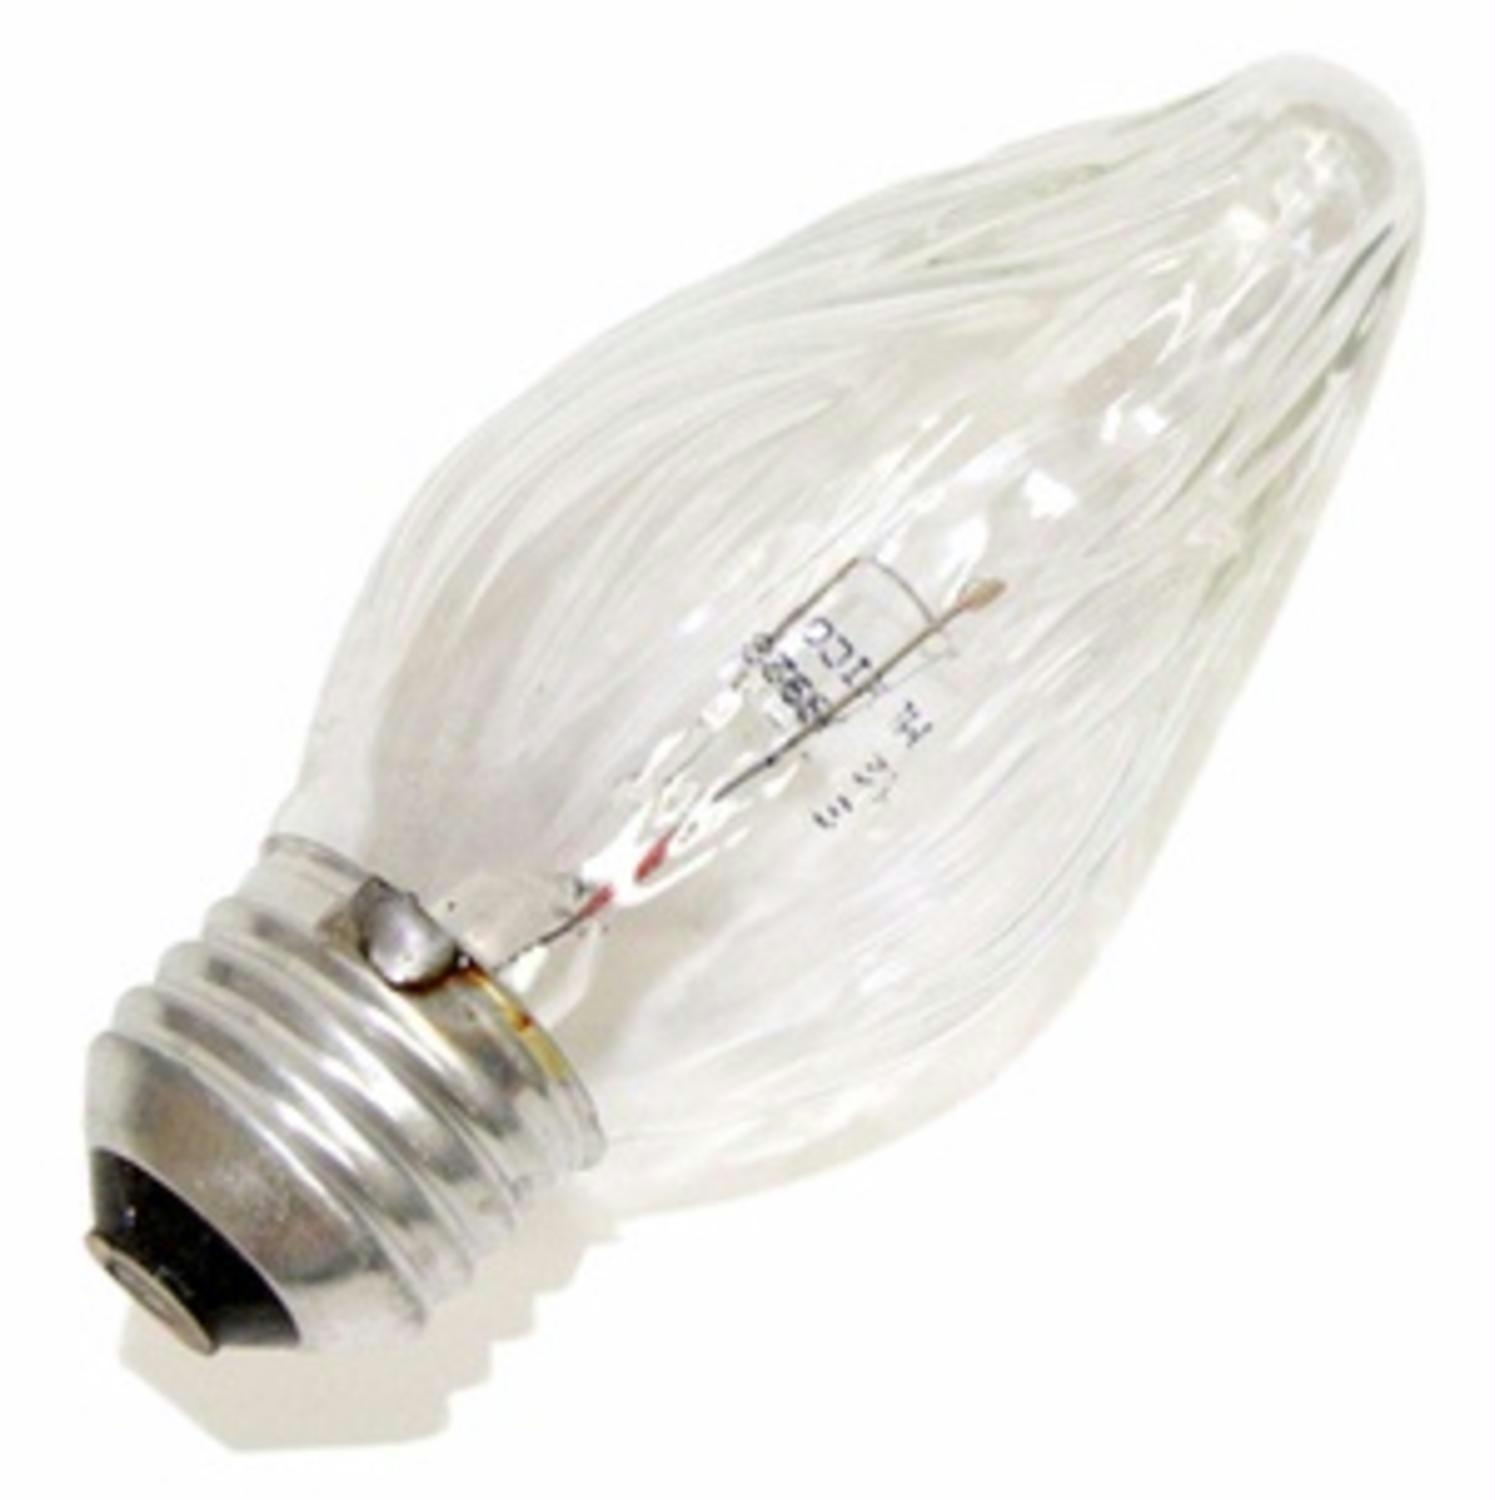 Pack of 25 Transparent Clear Flame E26 Base Replacement F15 Light Bulbs 40W